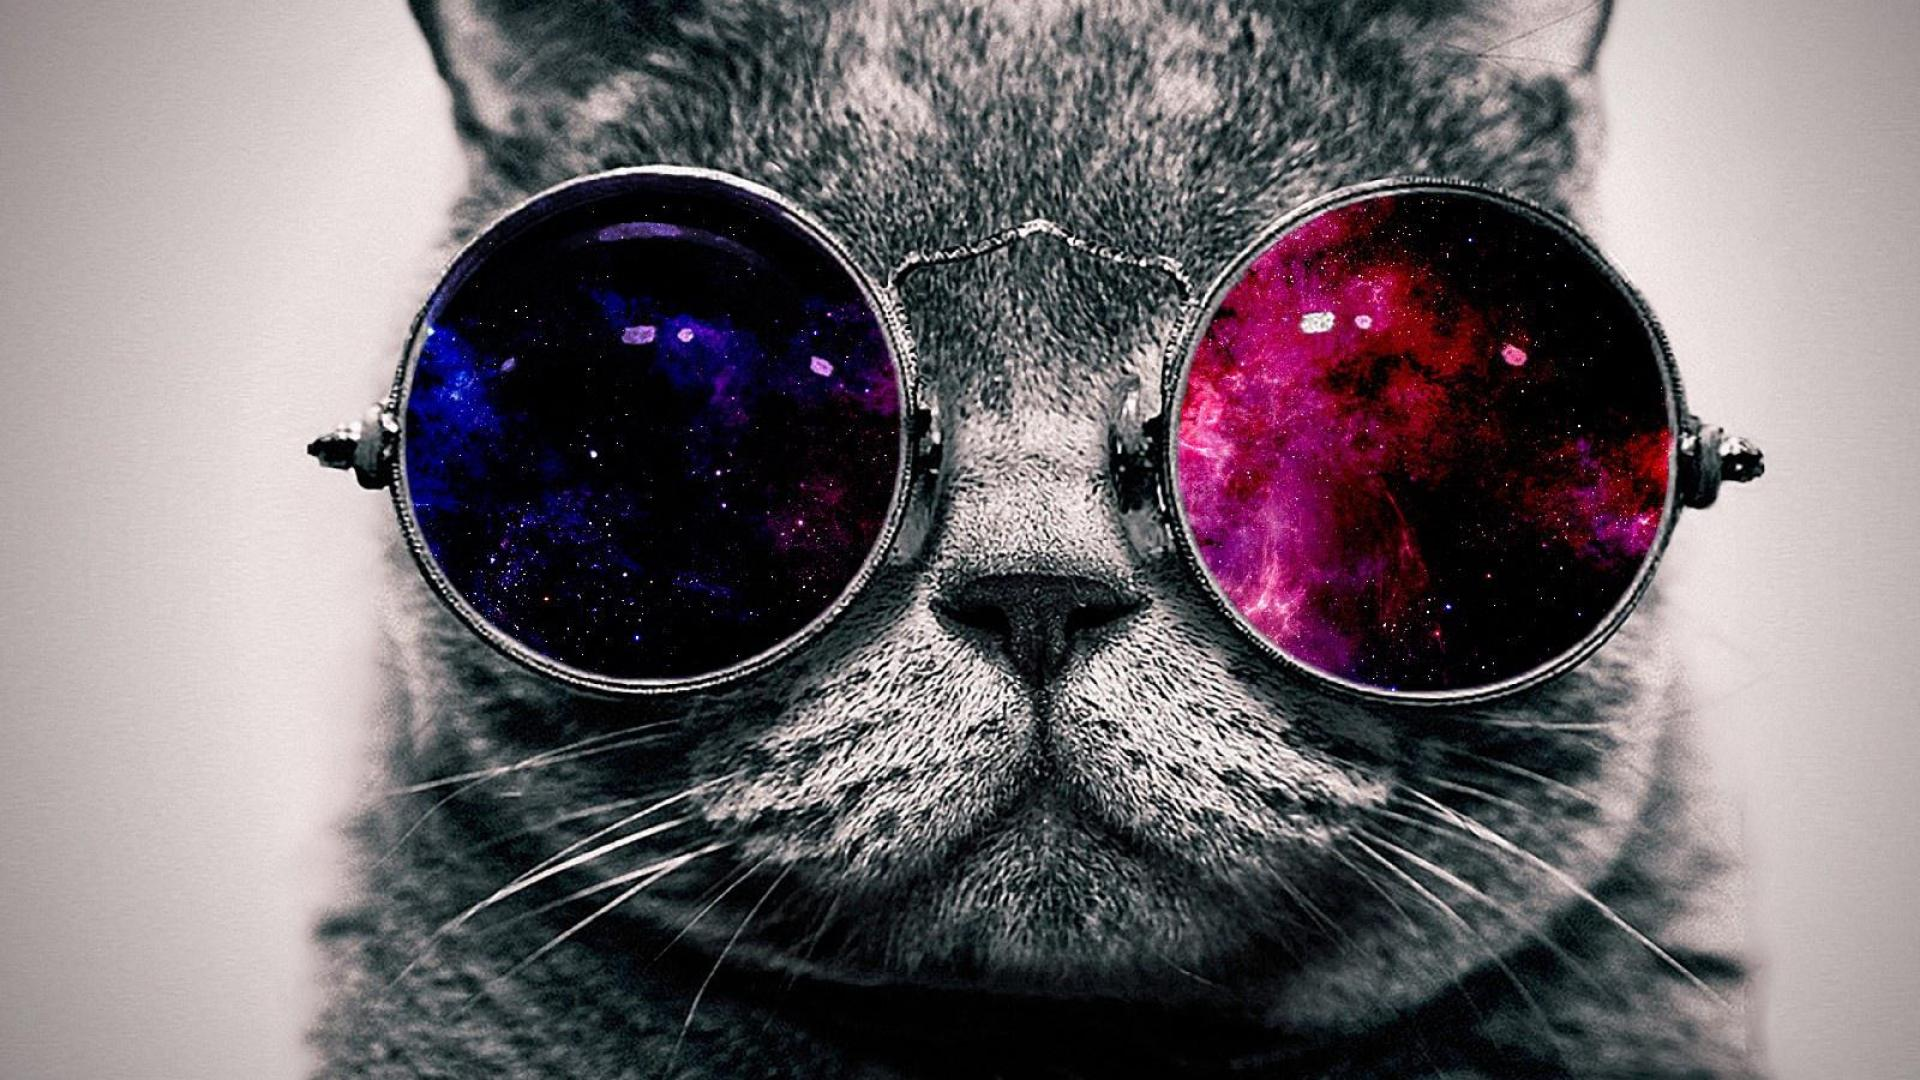 COOL CAT WITH THE GLASSES WALLPAPER   148014   HD Wallpapers 1920x1080